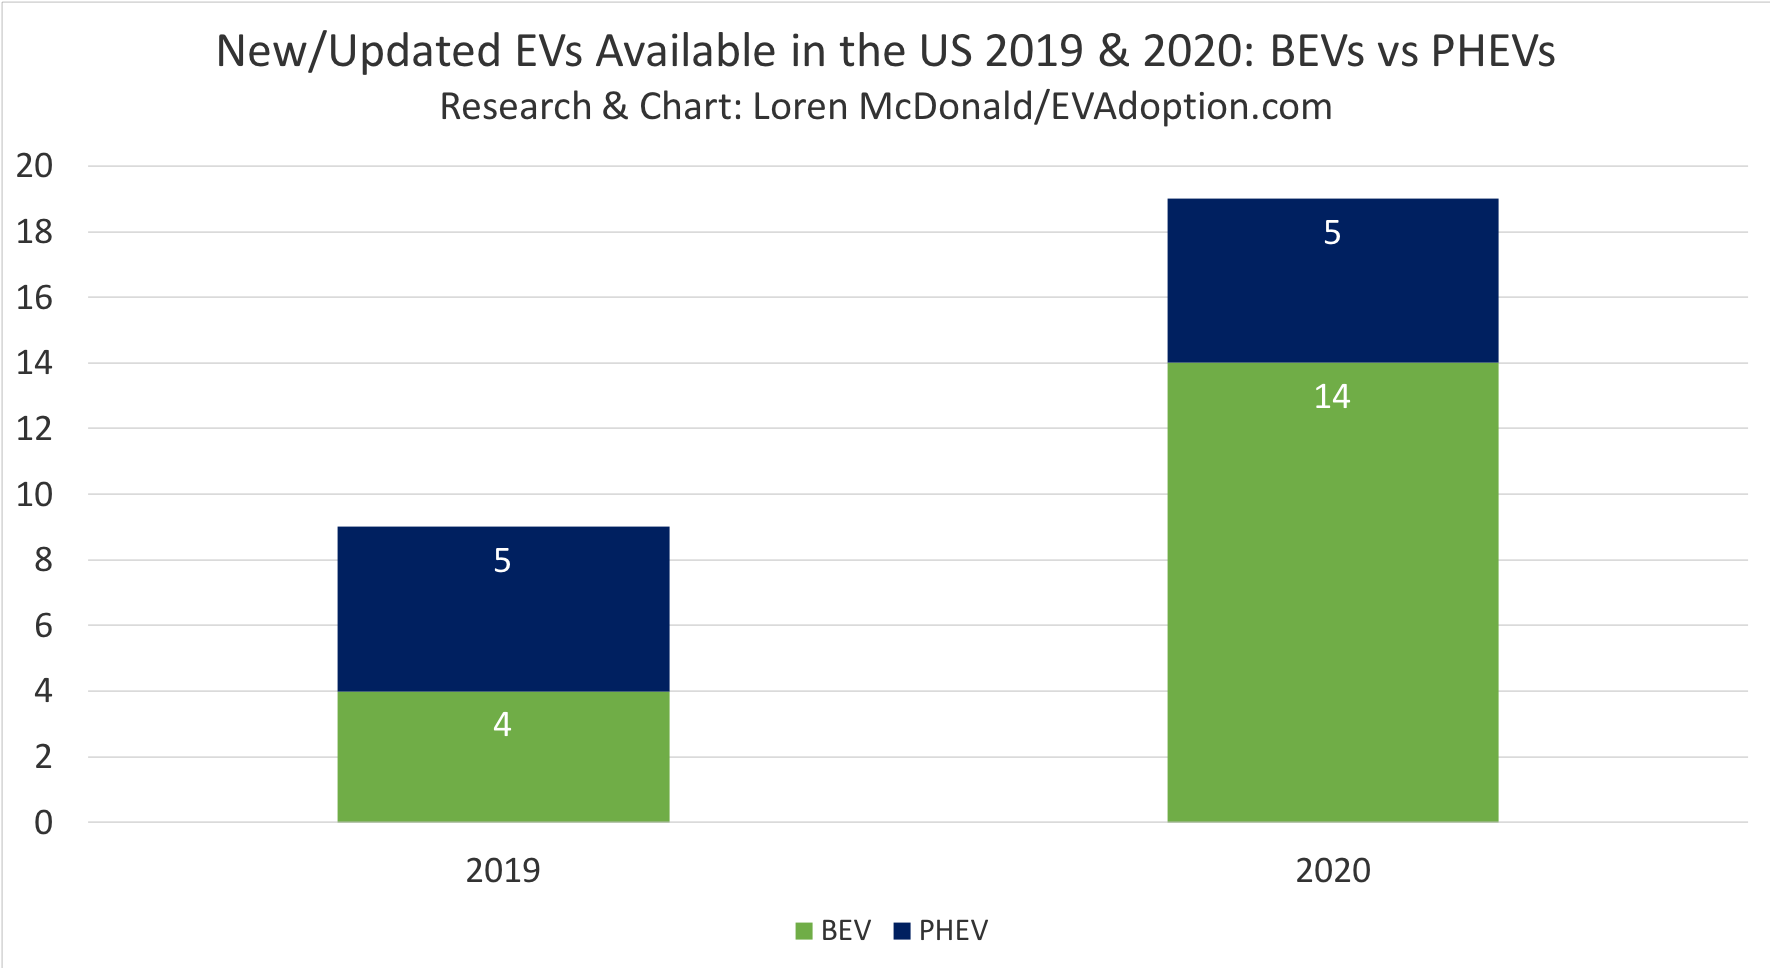 26 New EVs to Be Available in the US in 2019-2020 (New Analysis)